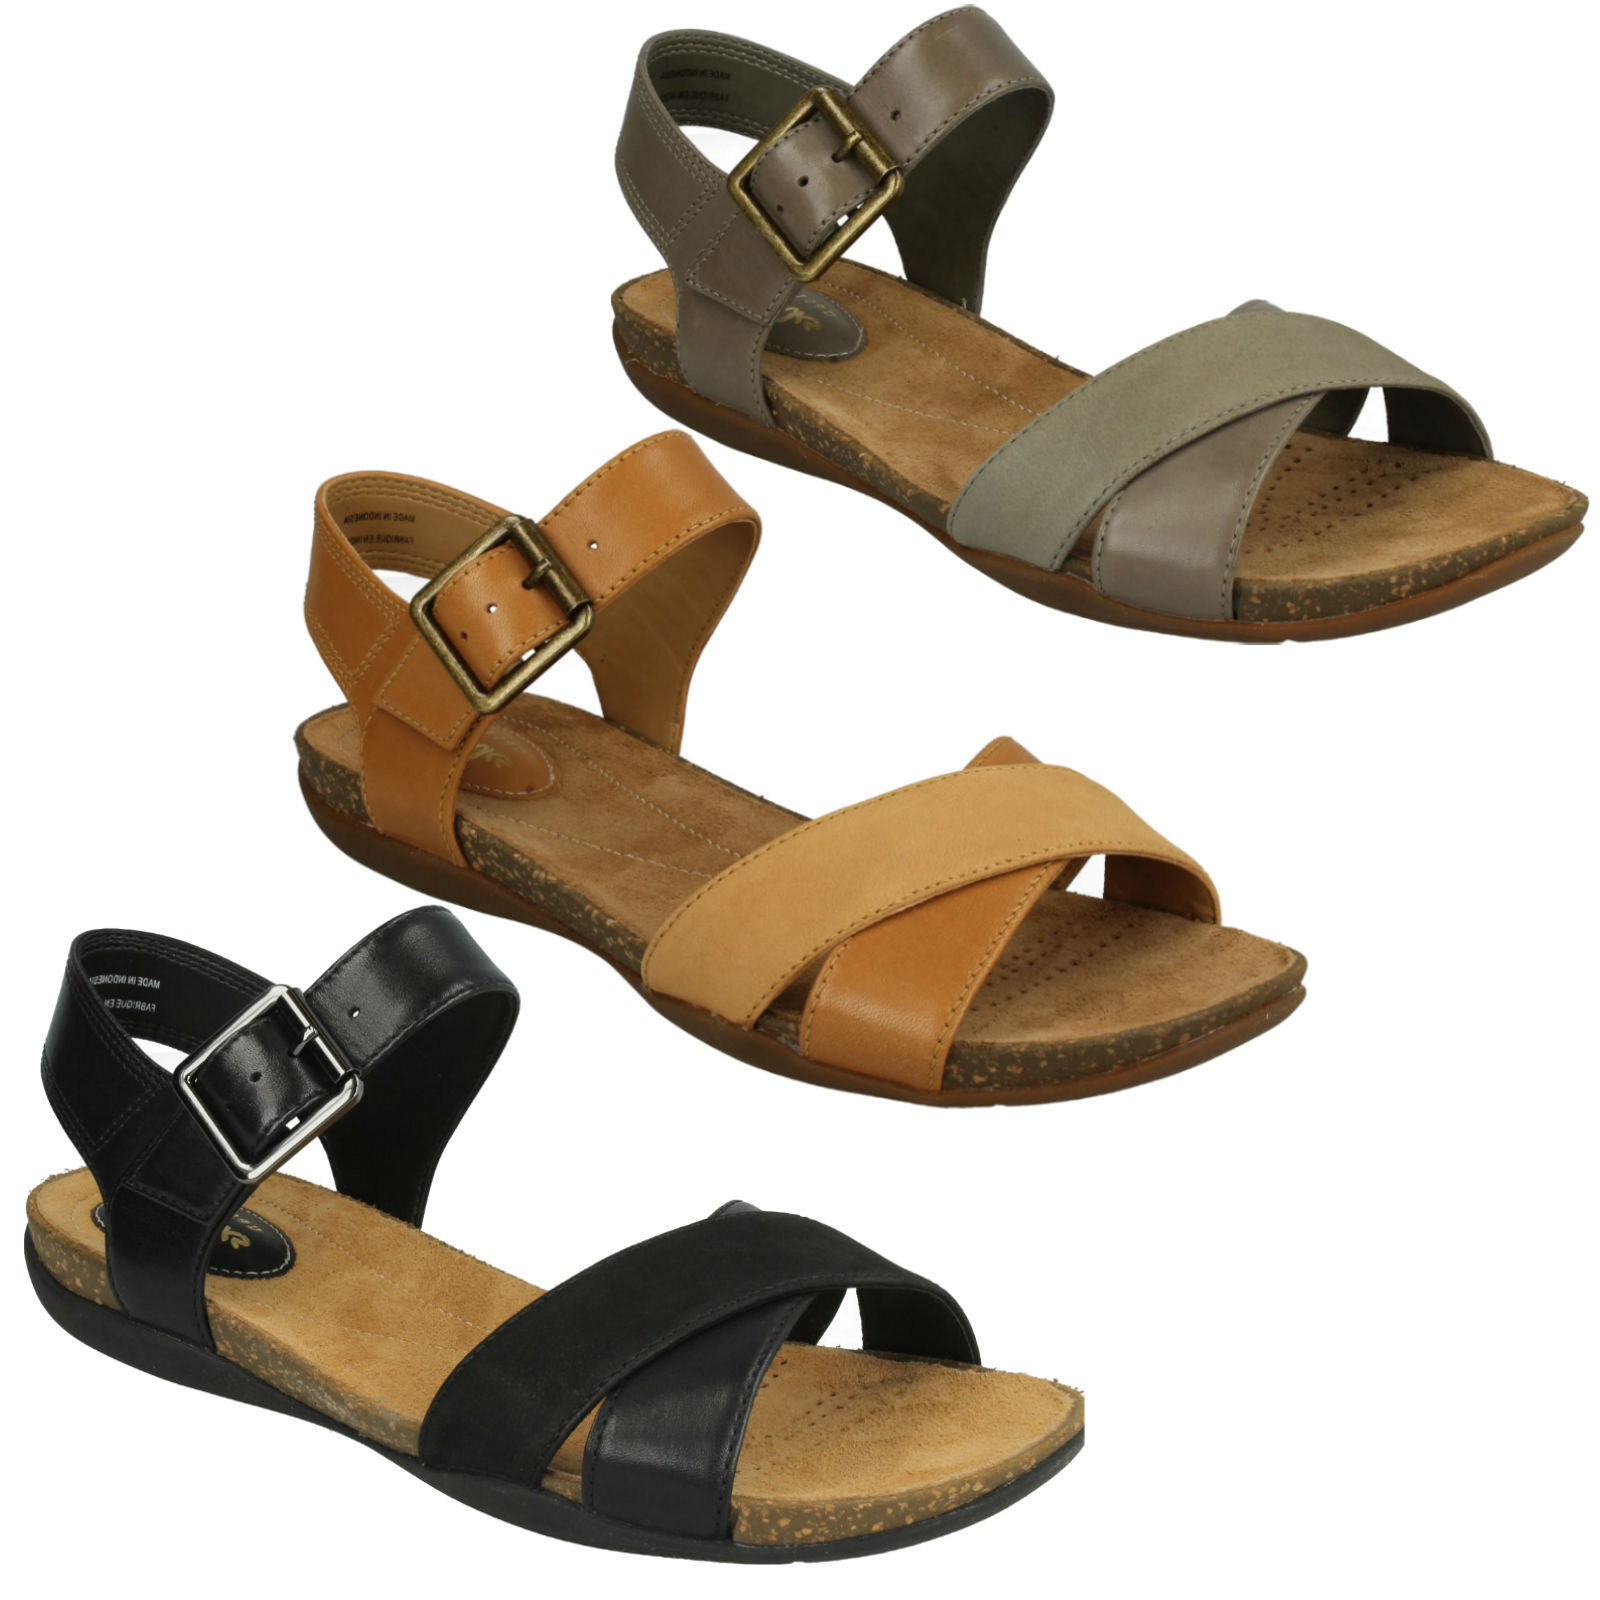 AUTUMN AIR LADIES CLARKS OPEN TOE CROSS OVER BUCKLE ANKLE STRAP CASUAL SANDALS